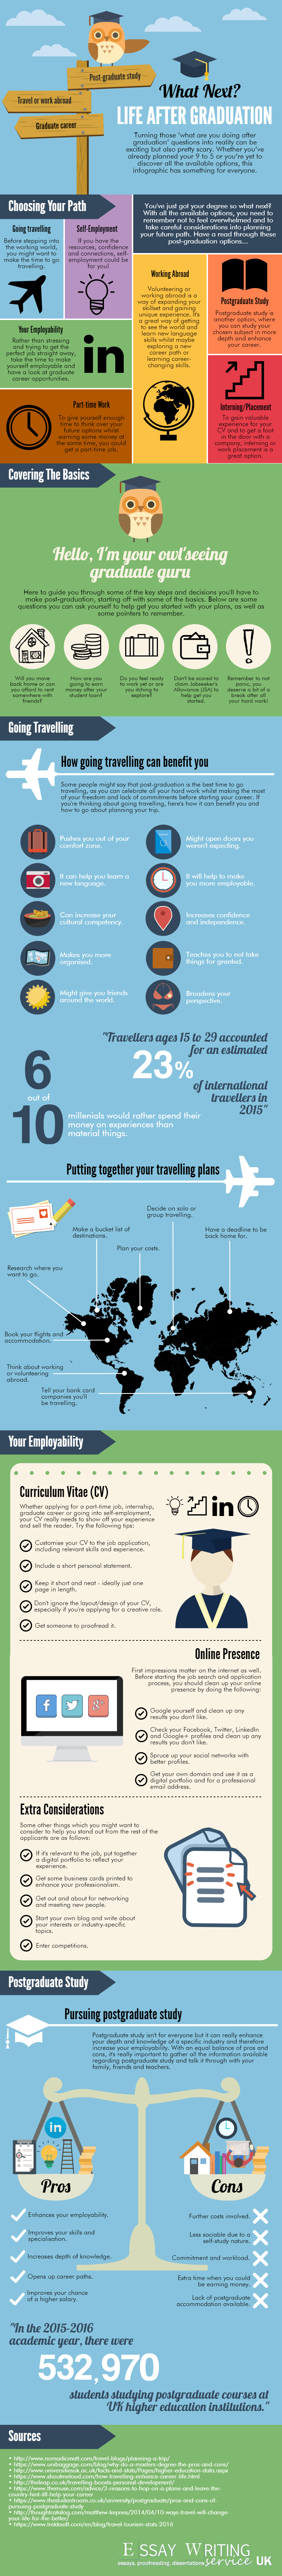 should you work or travel after graduation infographic getting ready for life after college don t get nervous sit down and figure out which path is right for you to learn more check out essay writing